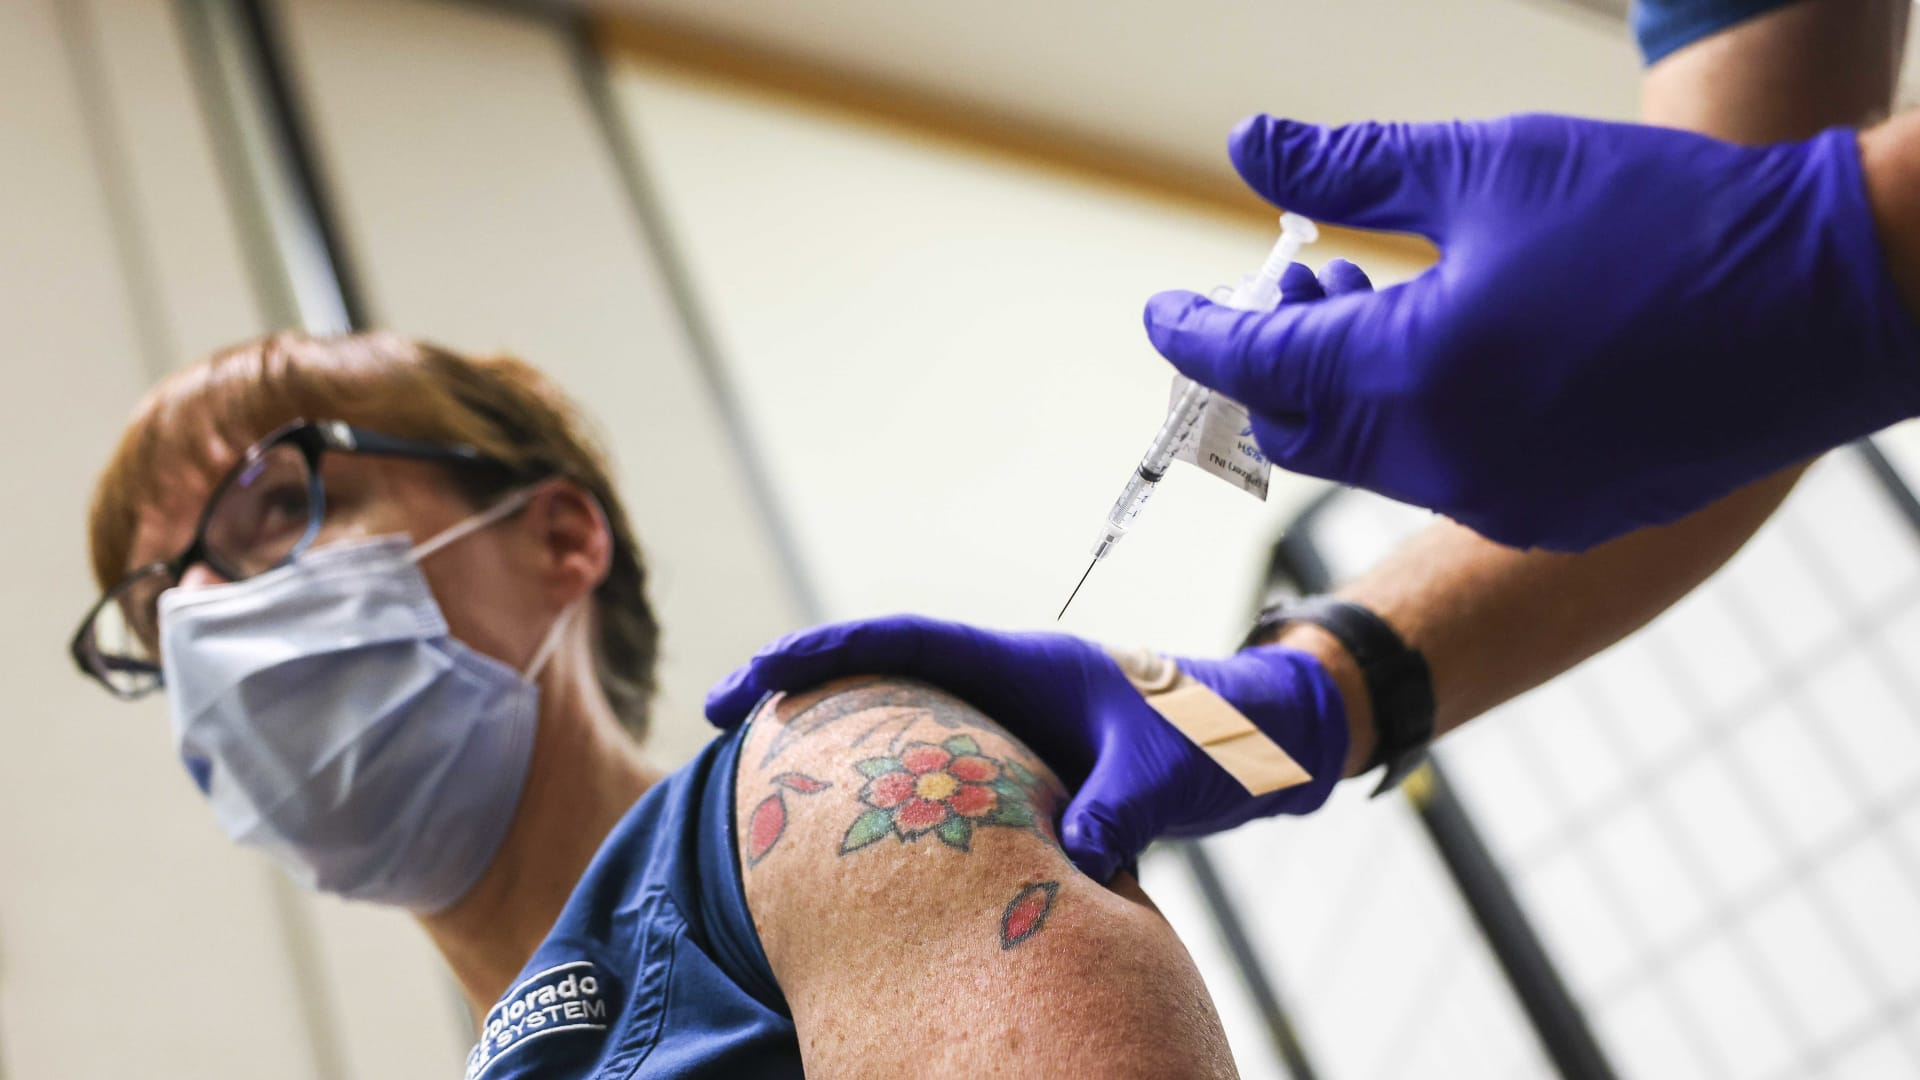 How to Encourage Employees to Get the Covid-19 Vaccine